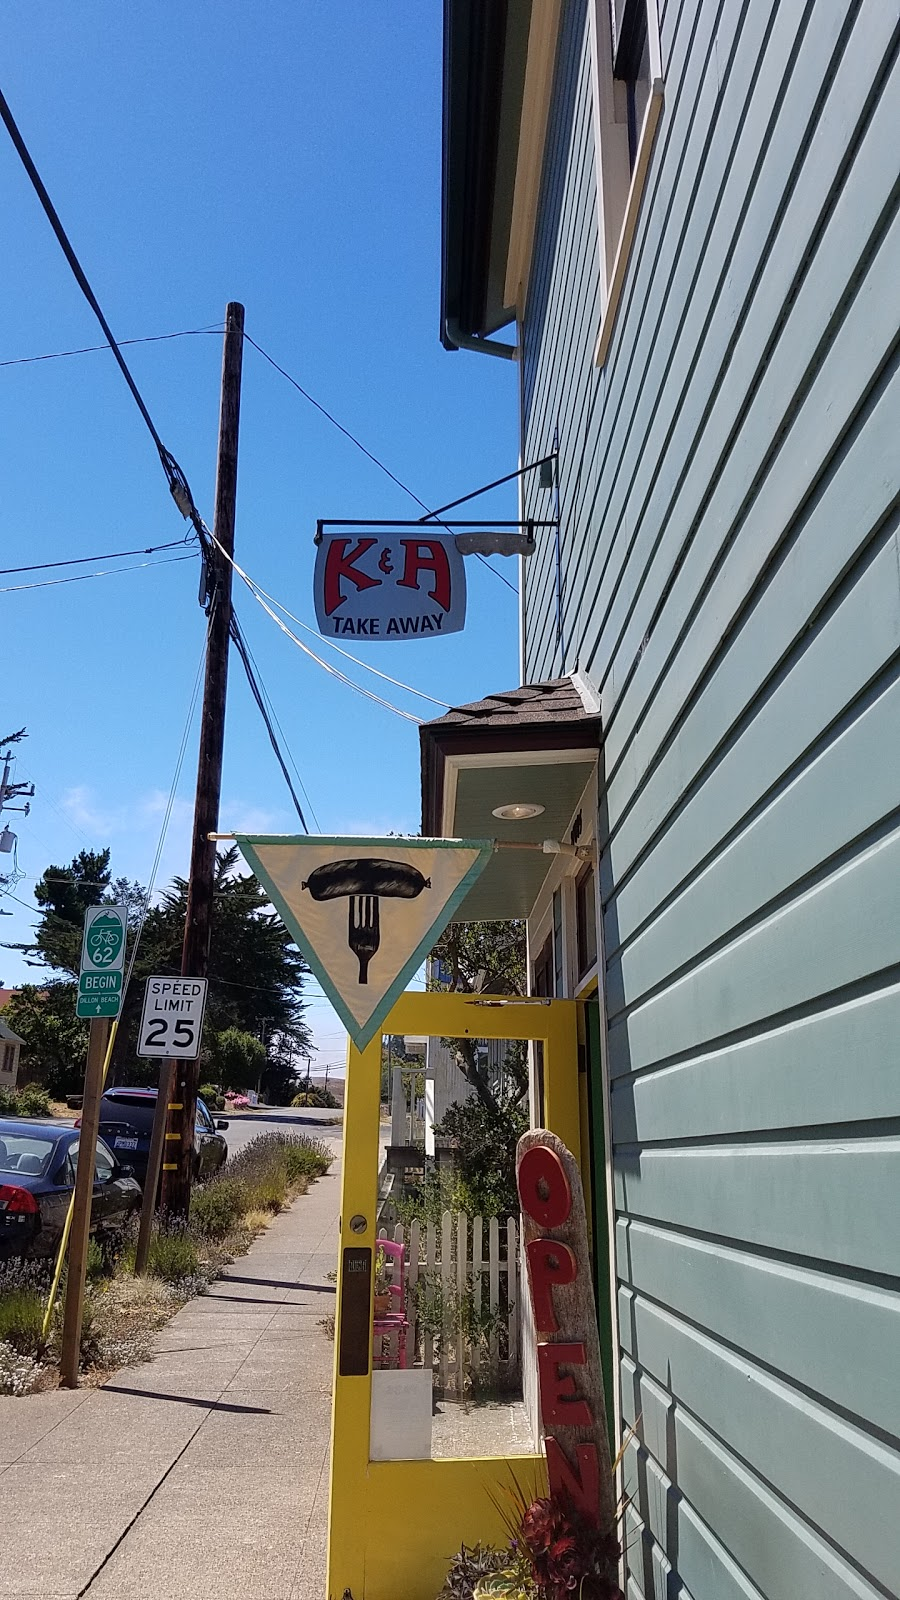 K&A Take Away - meal takeaway  | Photo 5 of 9 | Address: 13 Dilon Beach Road, Tomales, CA 94971, USA | Phone: (707) 878-2969